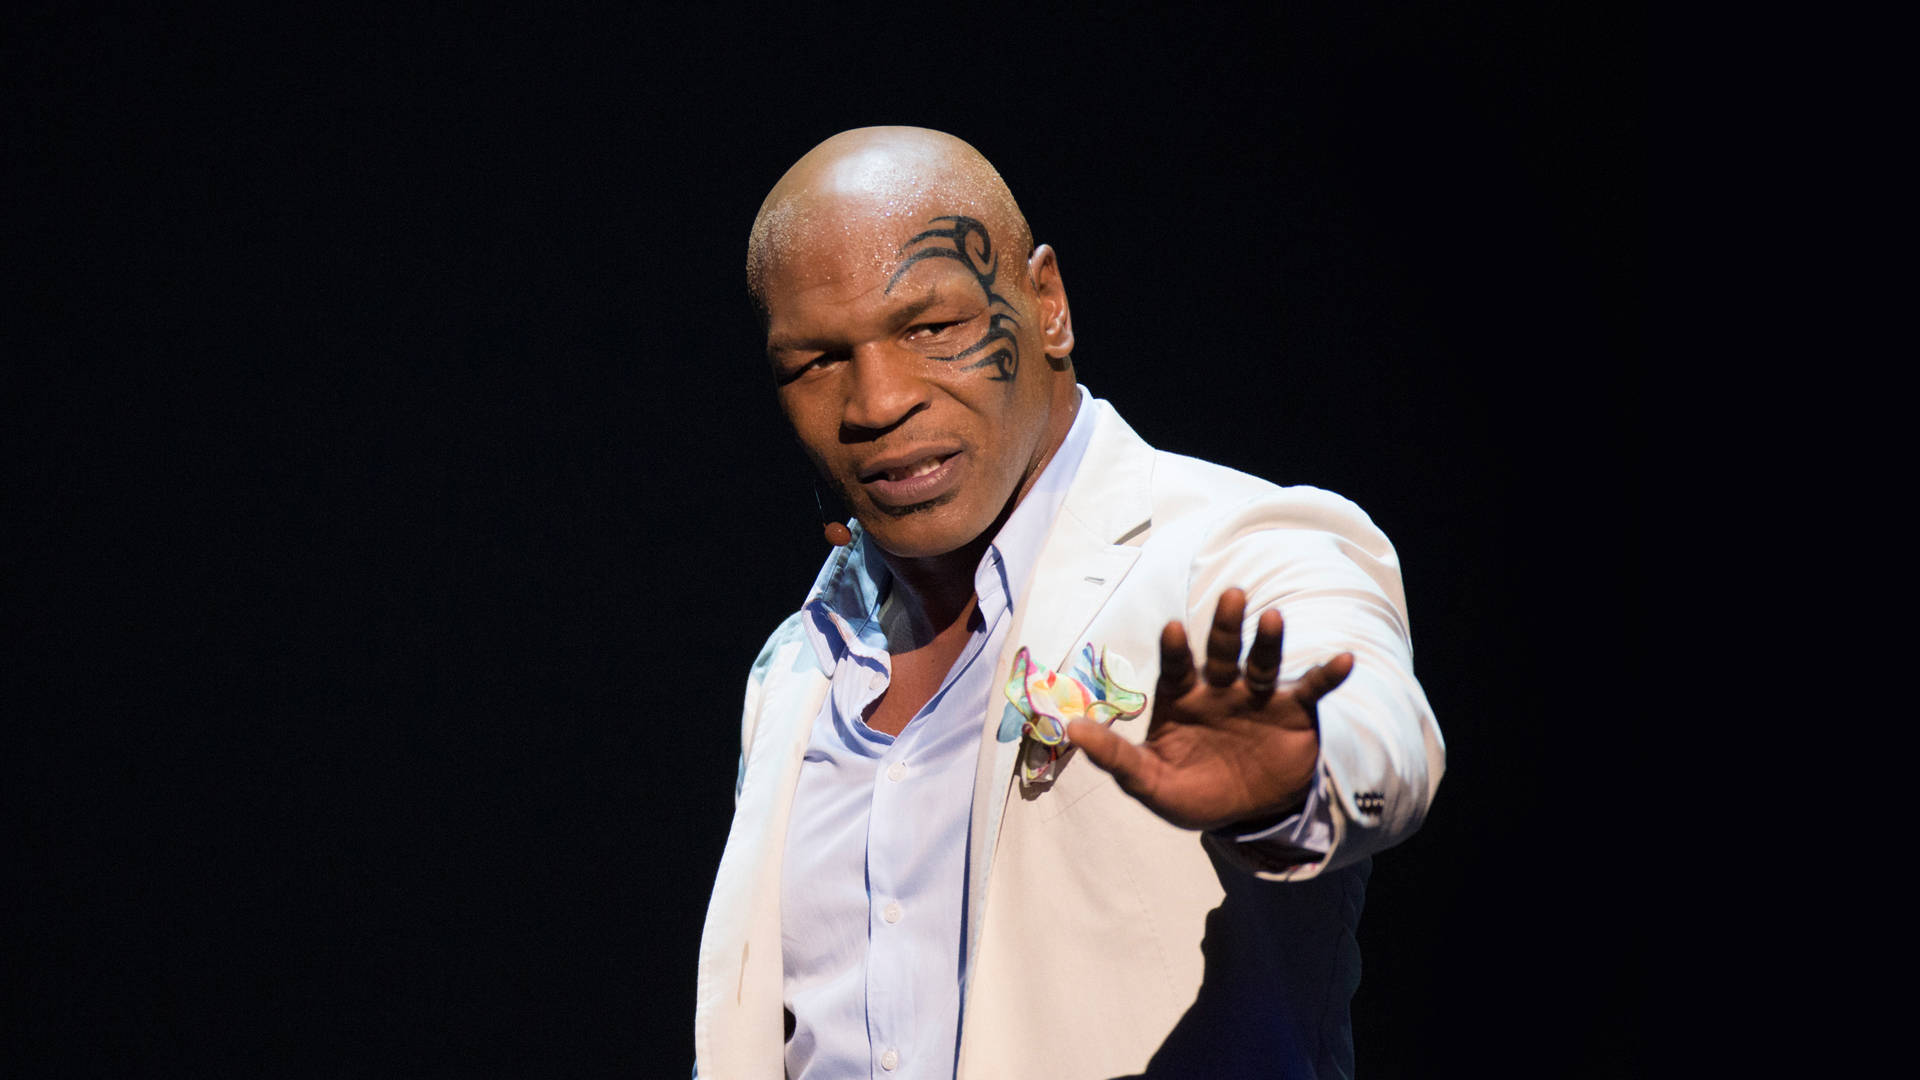 Mike Tyson annihilated Trevor Berbick